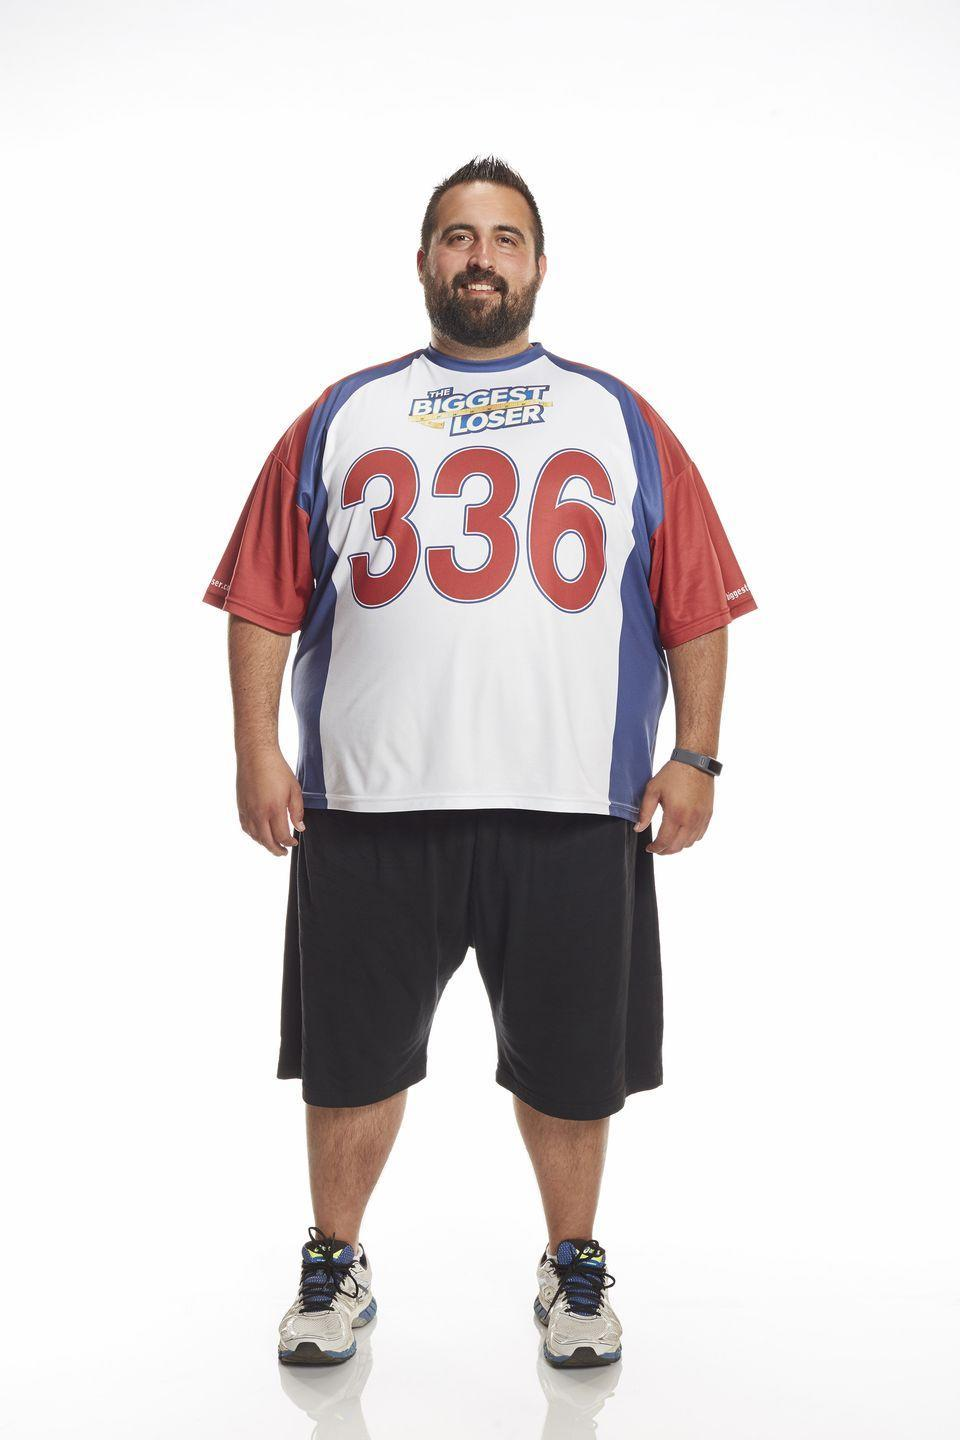 <p>The 36-year-old from Illinois was 336 pounds at the start of season 16. His BMI was 46.9.</p>